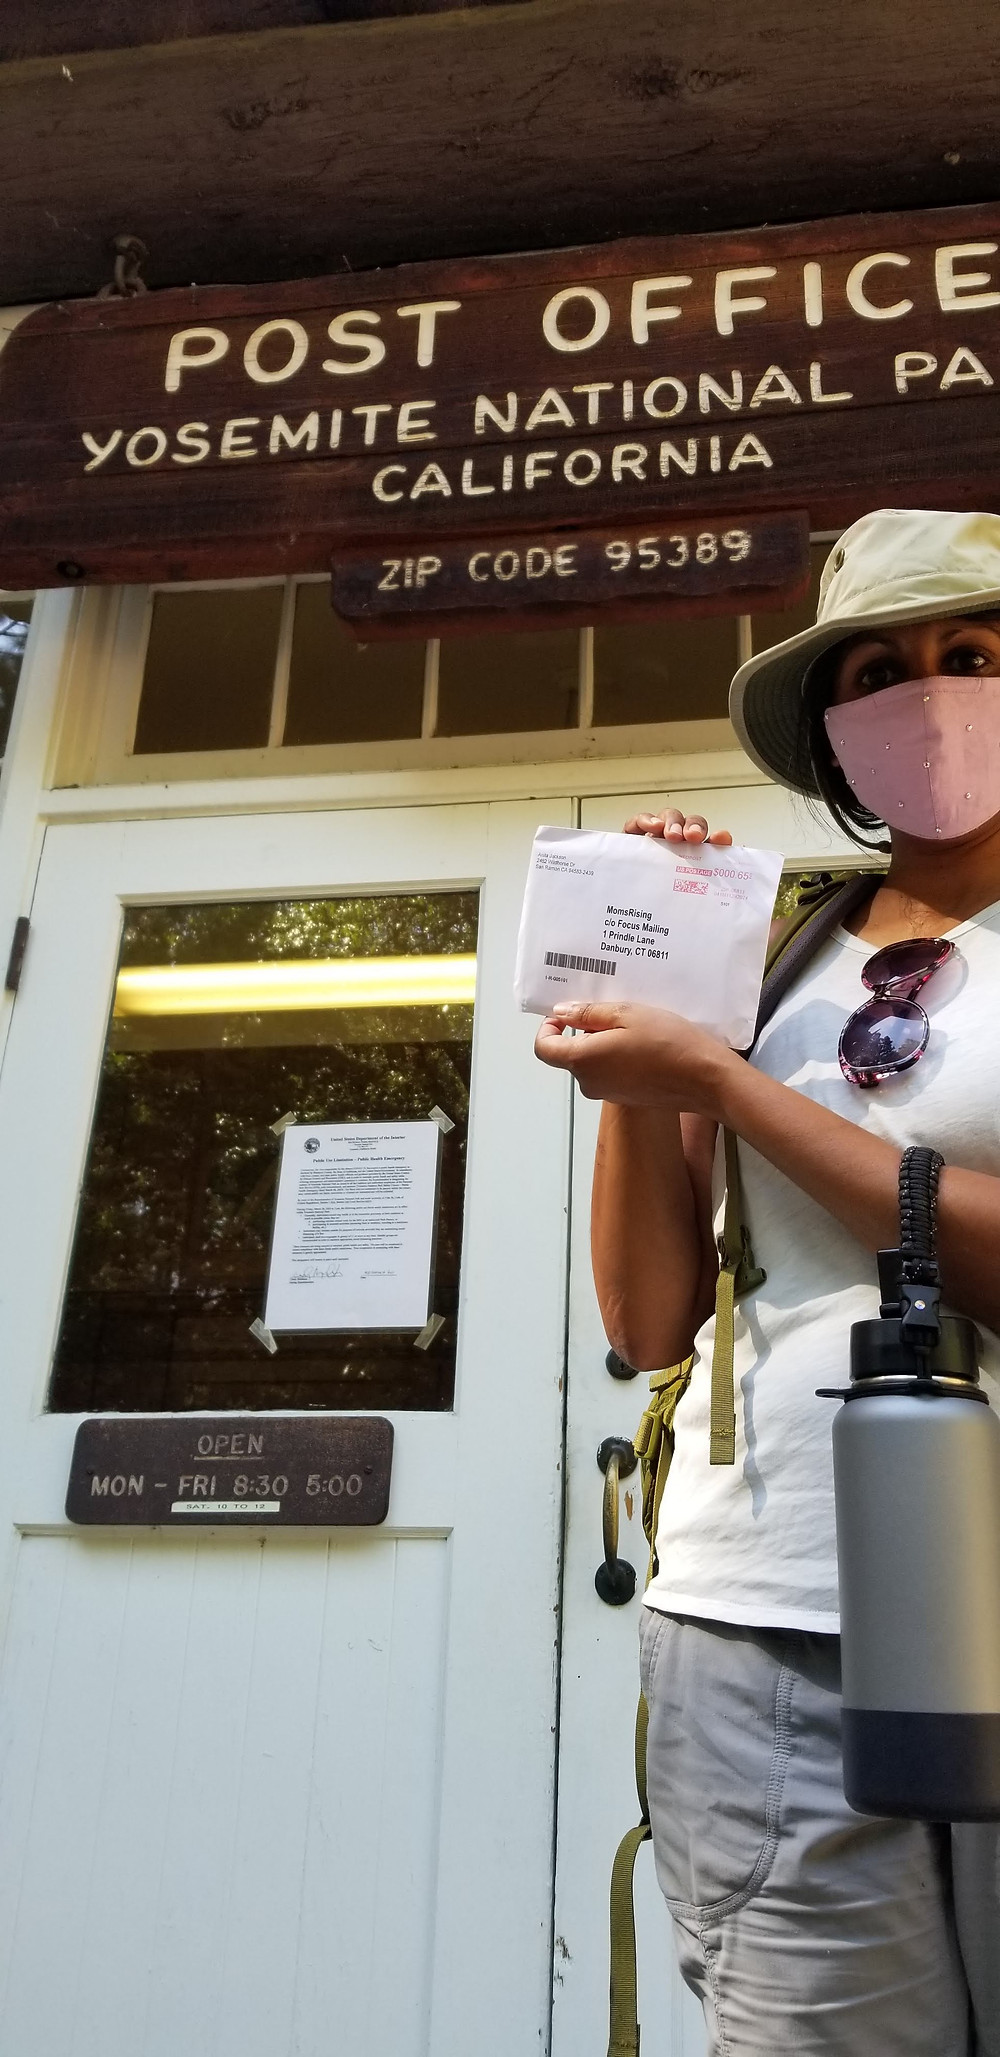 A person stands in front of the post office sign in Yosemite National Park, holding up an envelope and wearing a hat and a lavender mask.